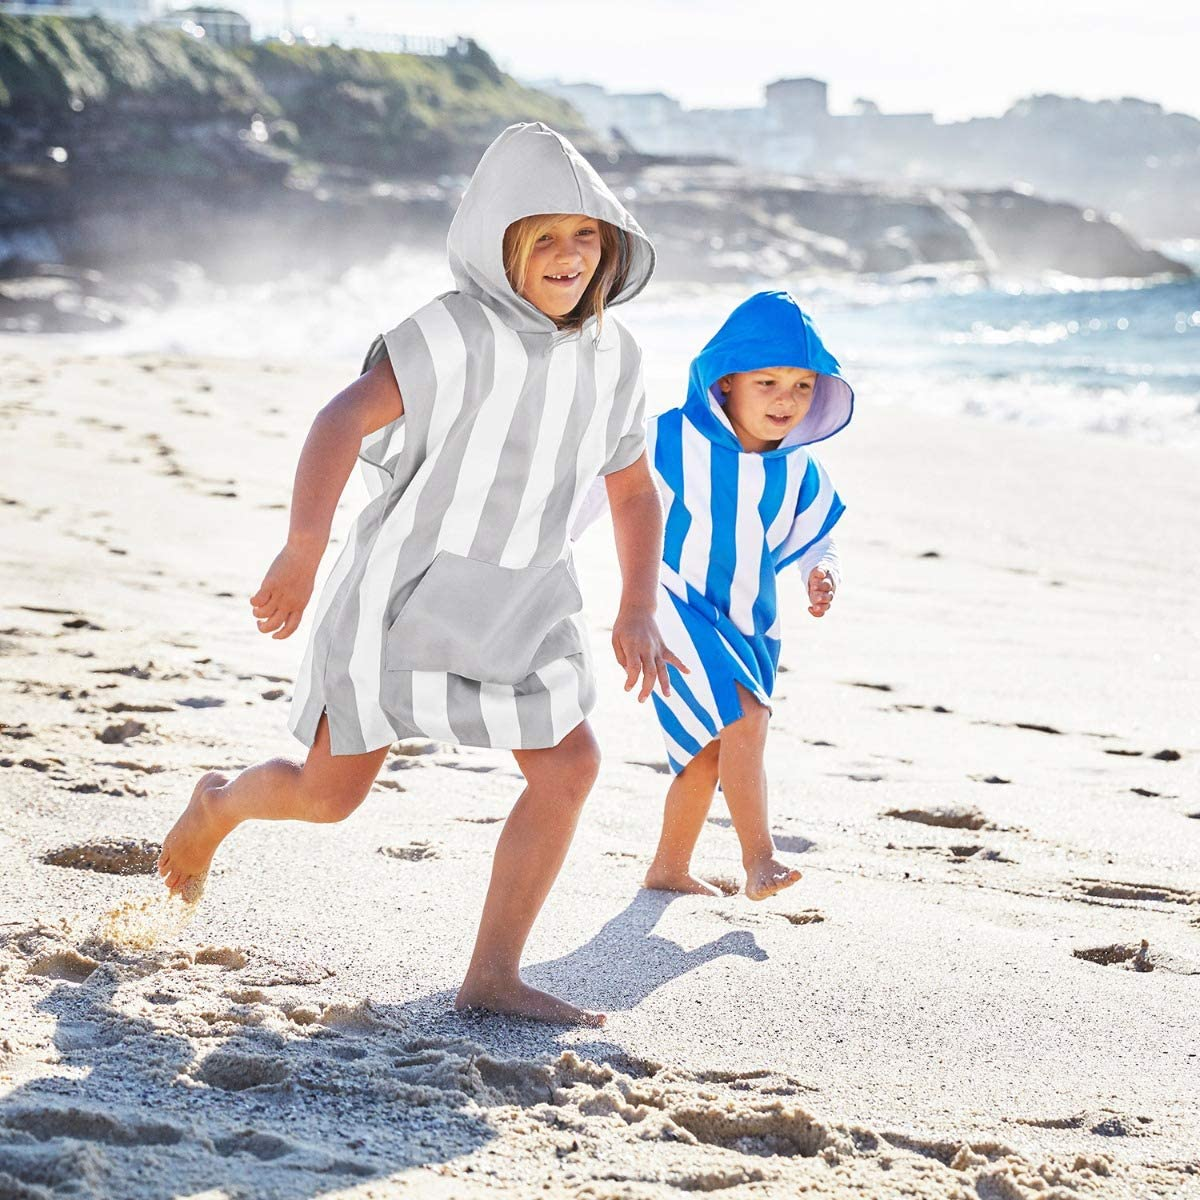 Beach /& Pool Quick Dry Hooded Towels for Swim packs into its own drawstring beach bag Suits ages 3-7 Microfibre Kids Poncho with hood Compact /& Lightweight 28 long - Mini collection